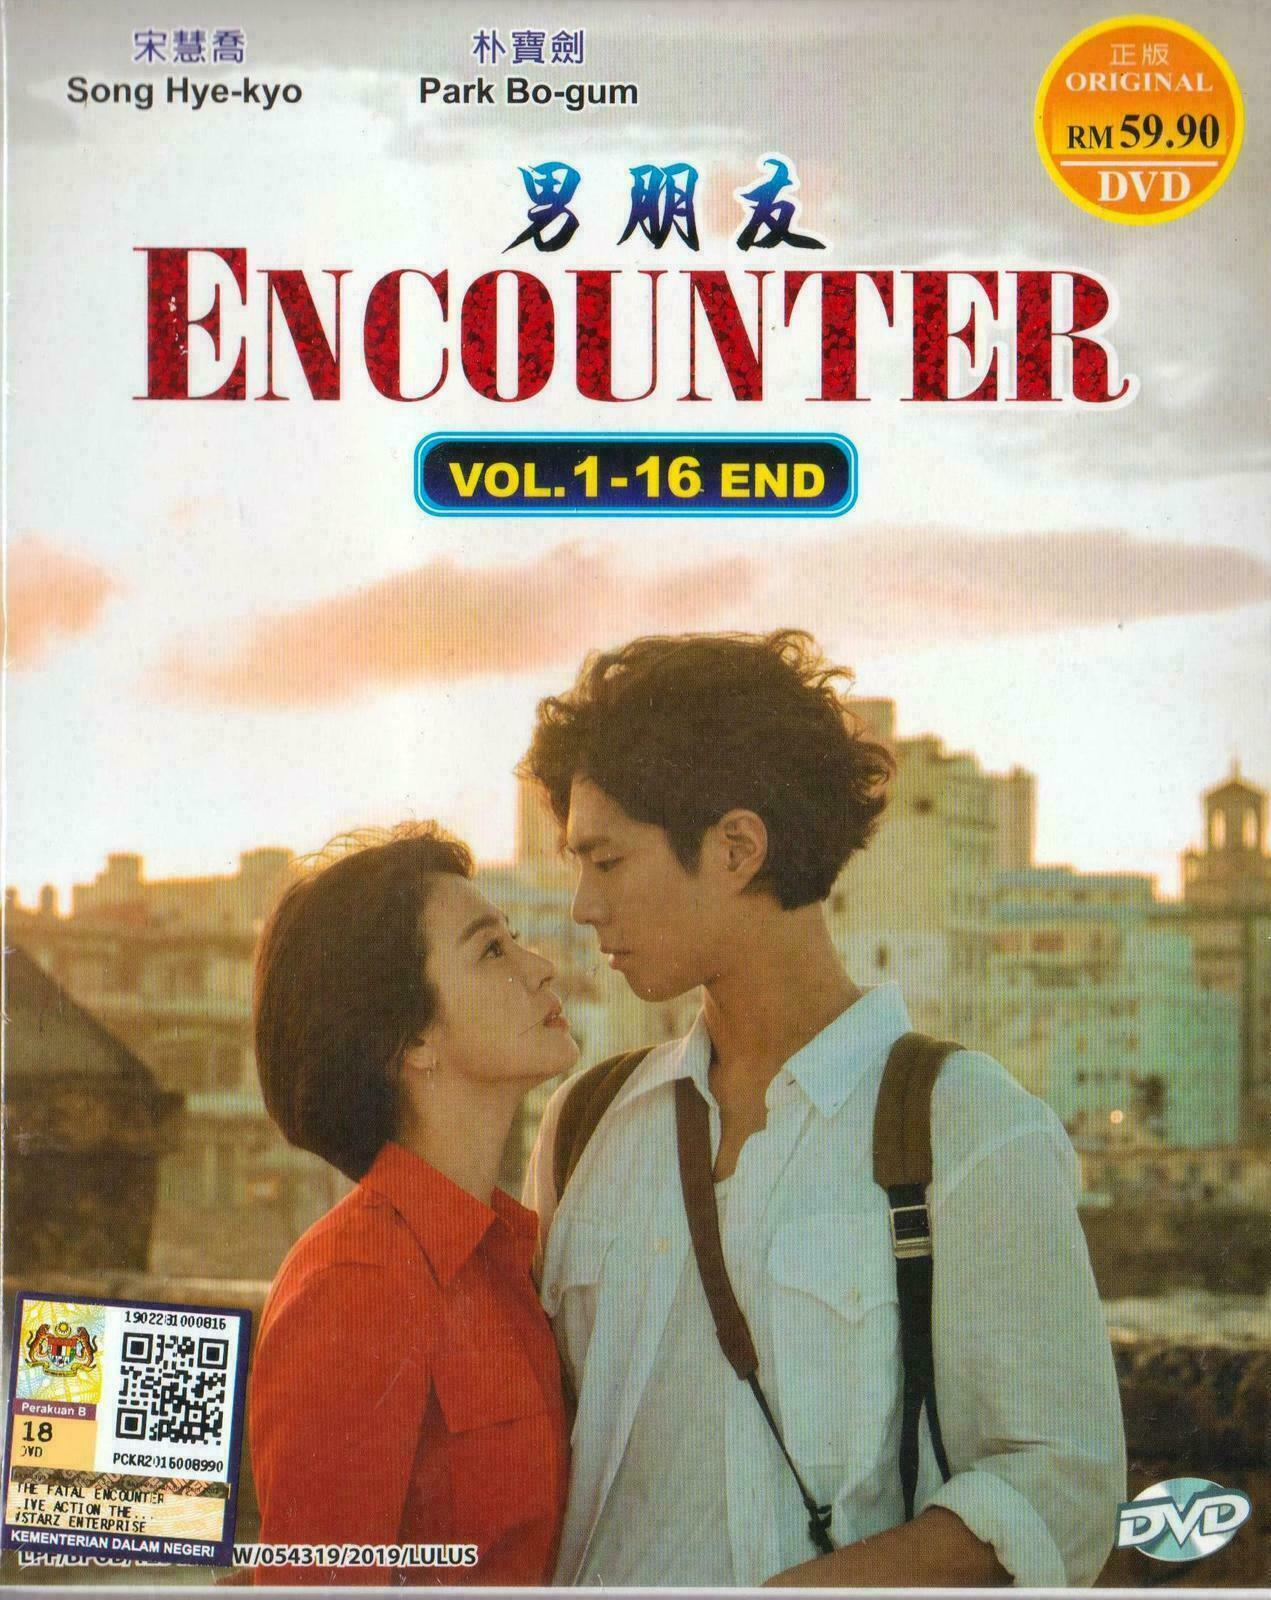 Korean Drama Encounter Dvd -English Subtitle Ship From USA